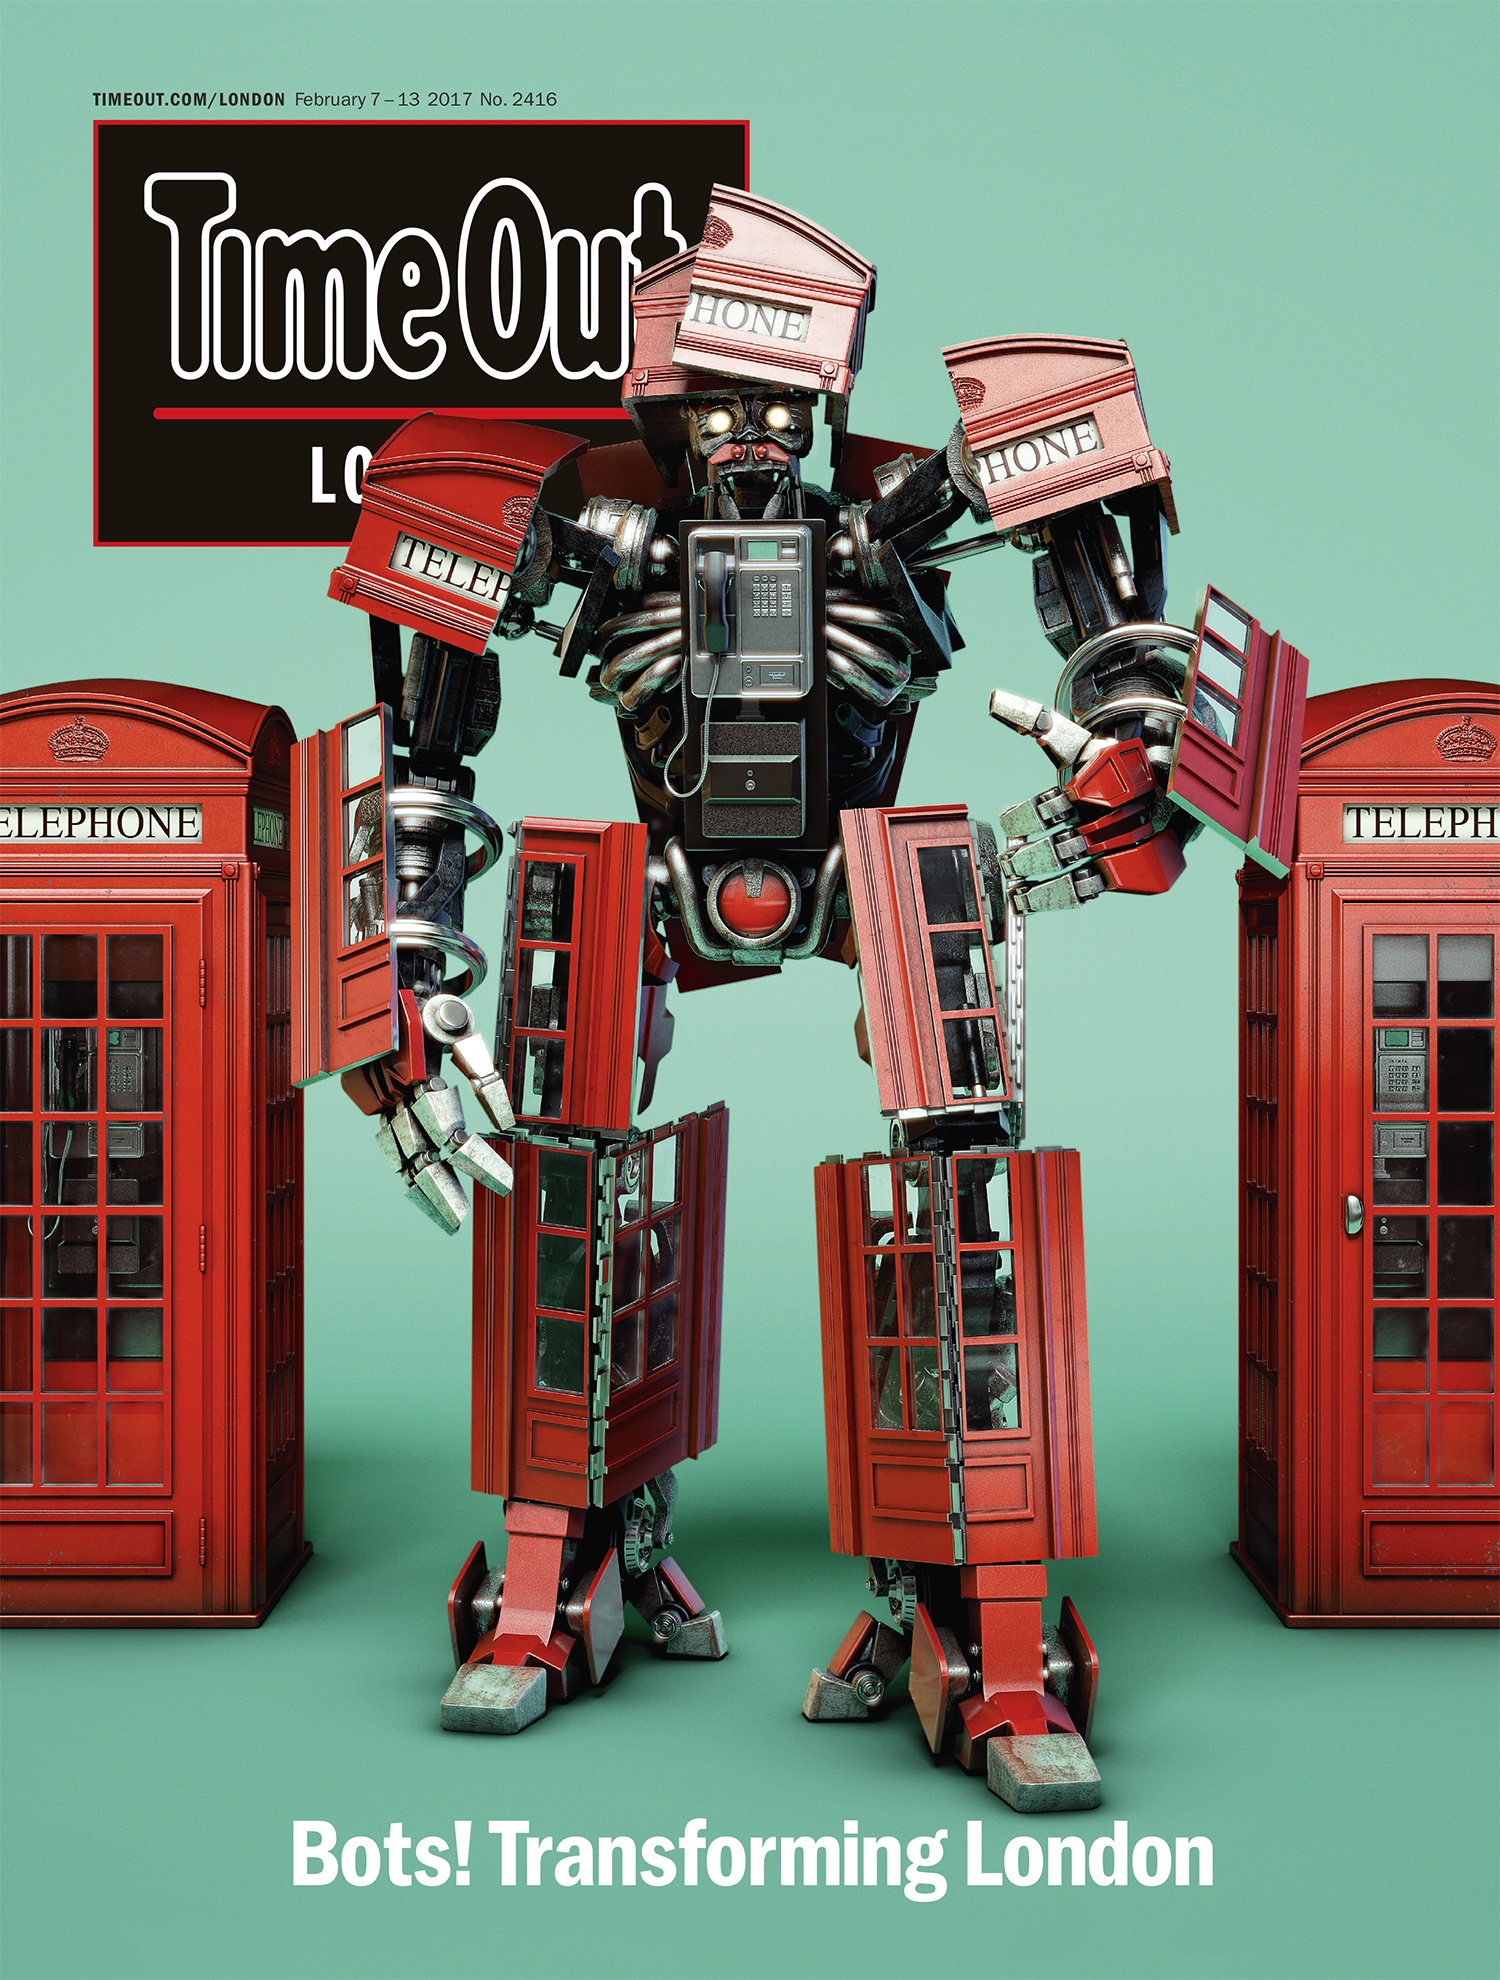 time out london front cover featuring a red transformer robot standing in front of two british red telephone boxes